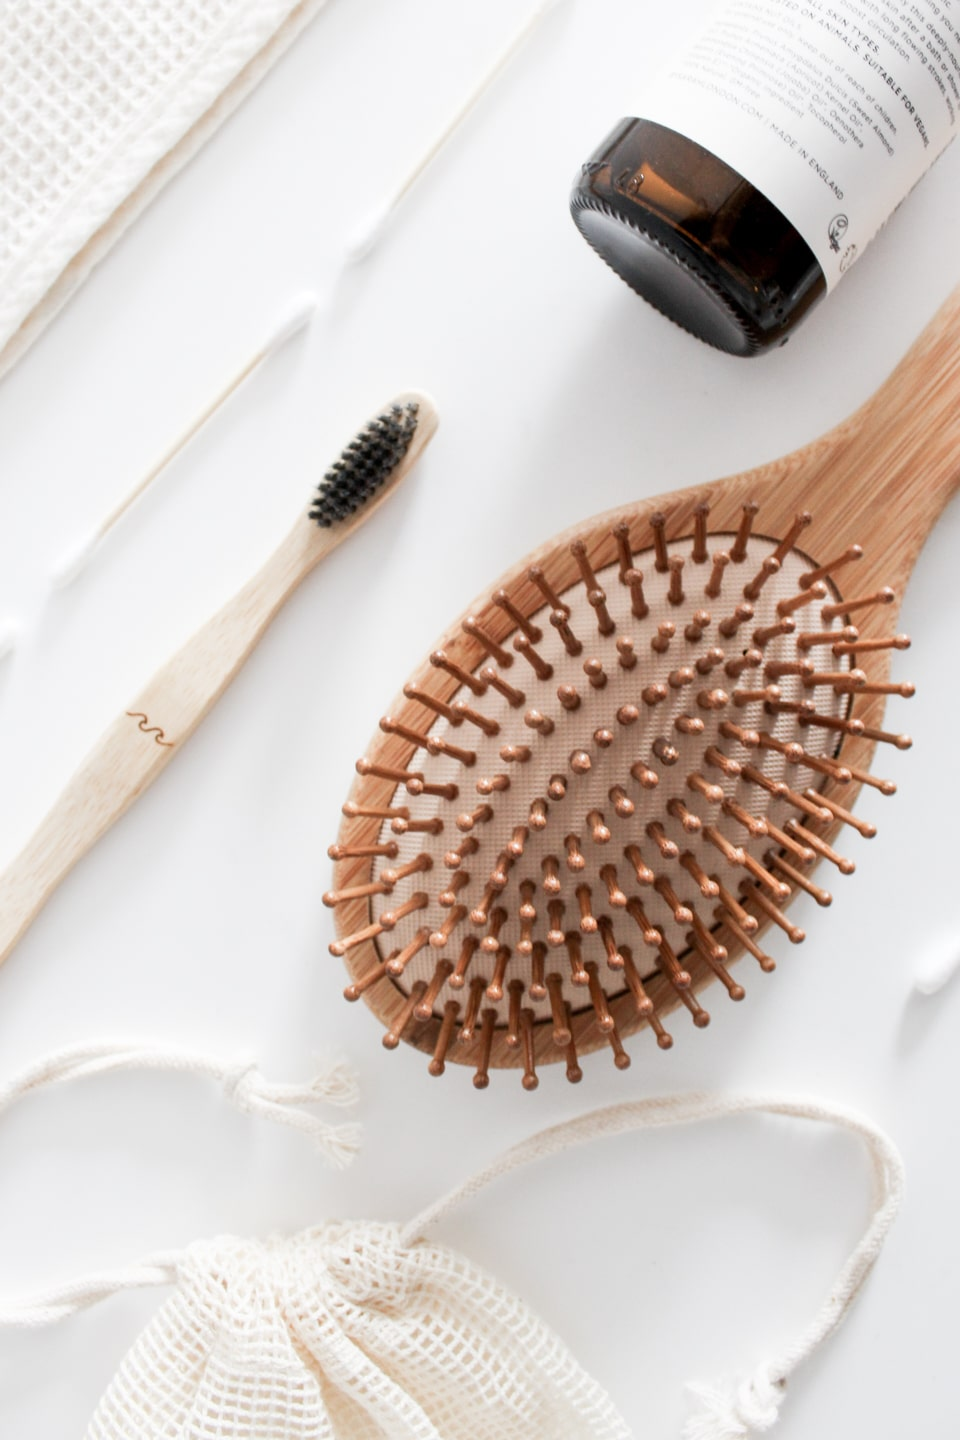 Net Zero Co Brushes